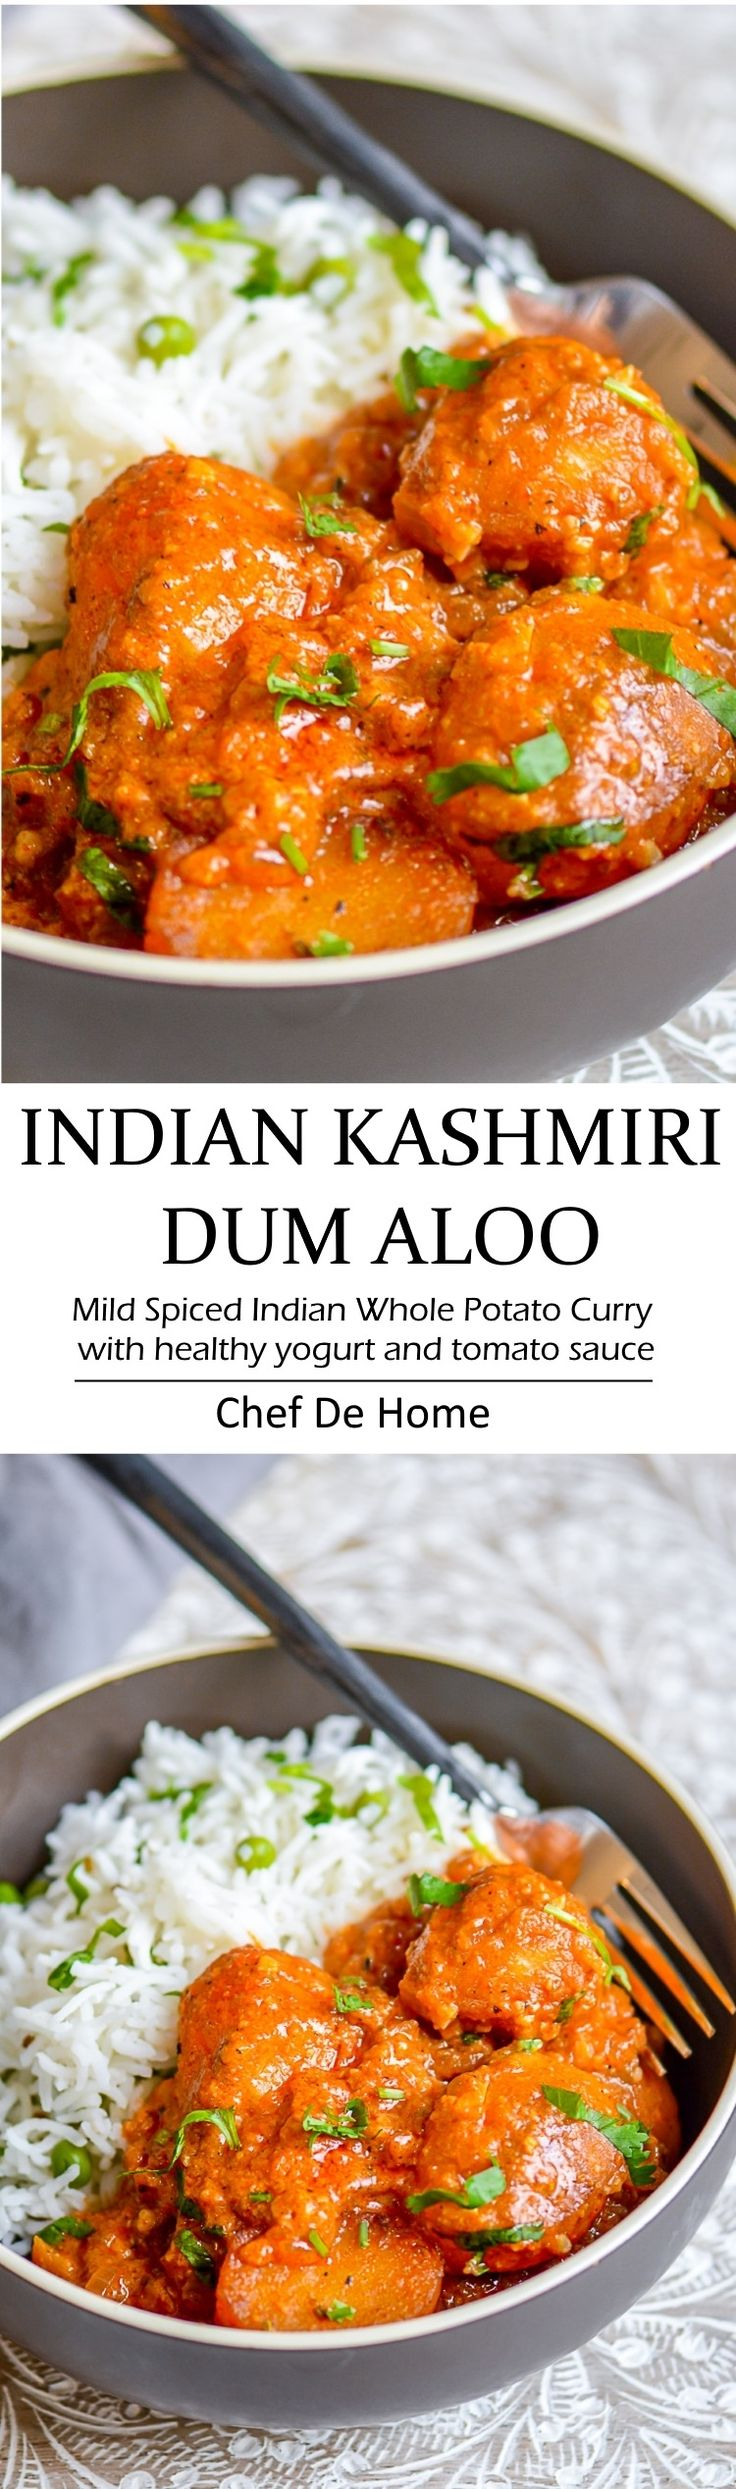 [ Indian ] Kashmiri Dum Aloo - a yogurt base and lite spices make scrumptious base and served with lite rice and green peas pilaf | chefdehome.com